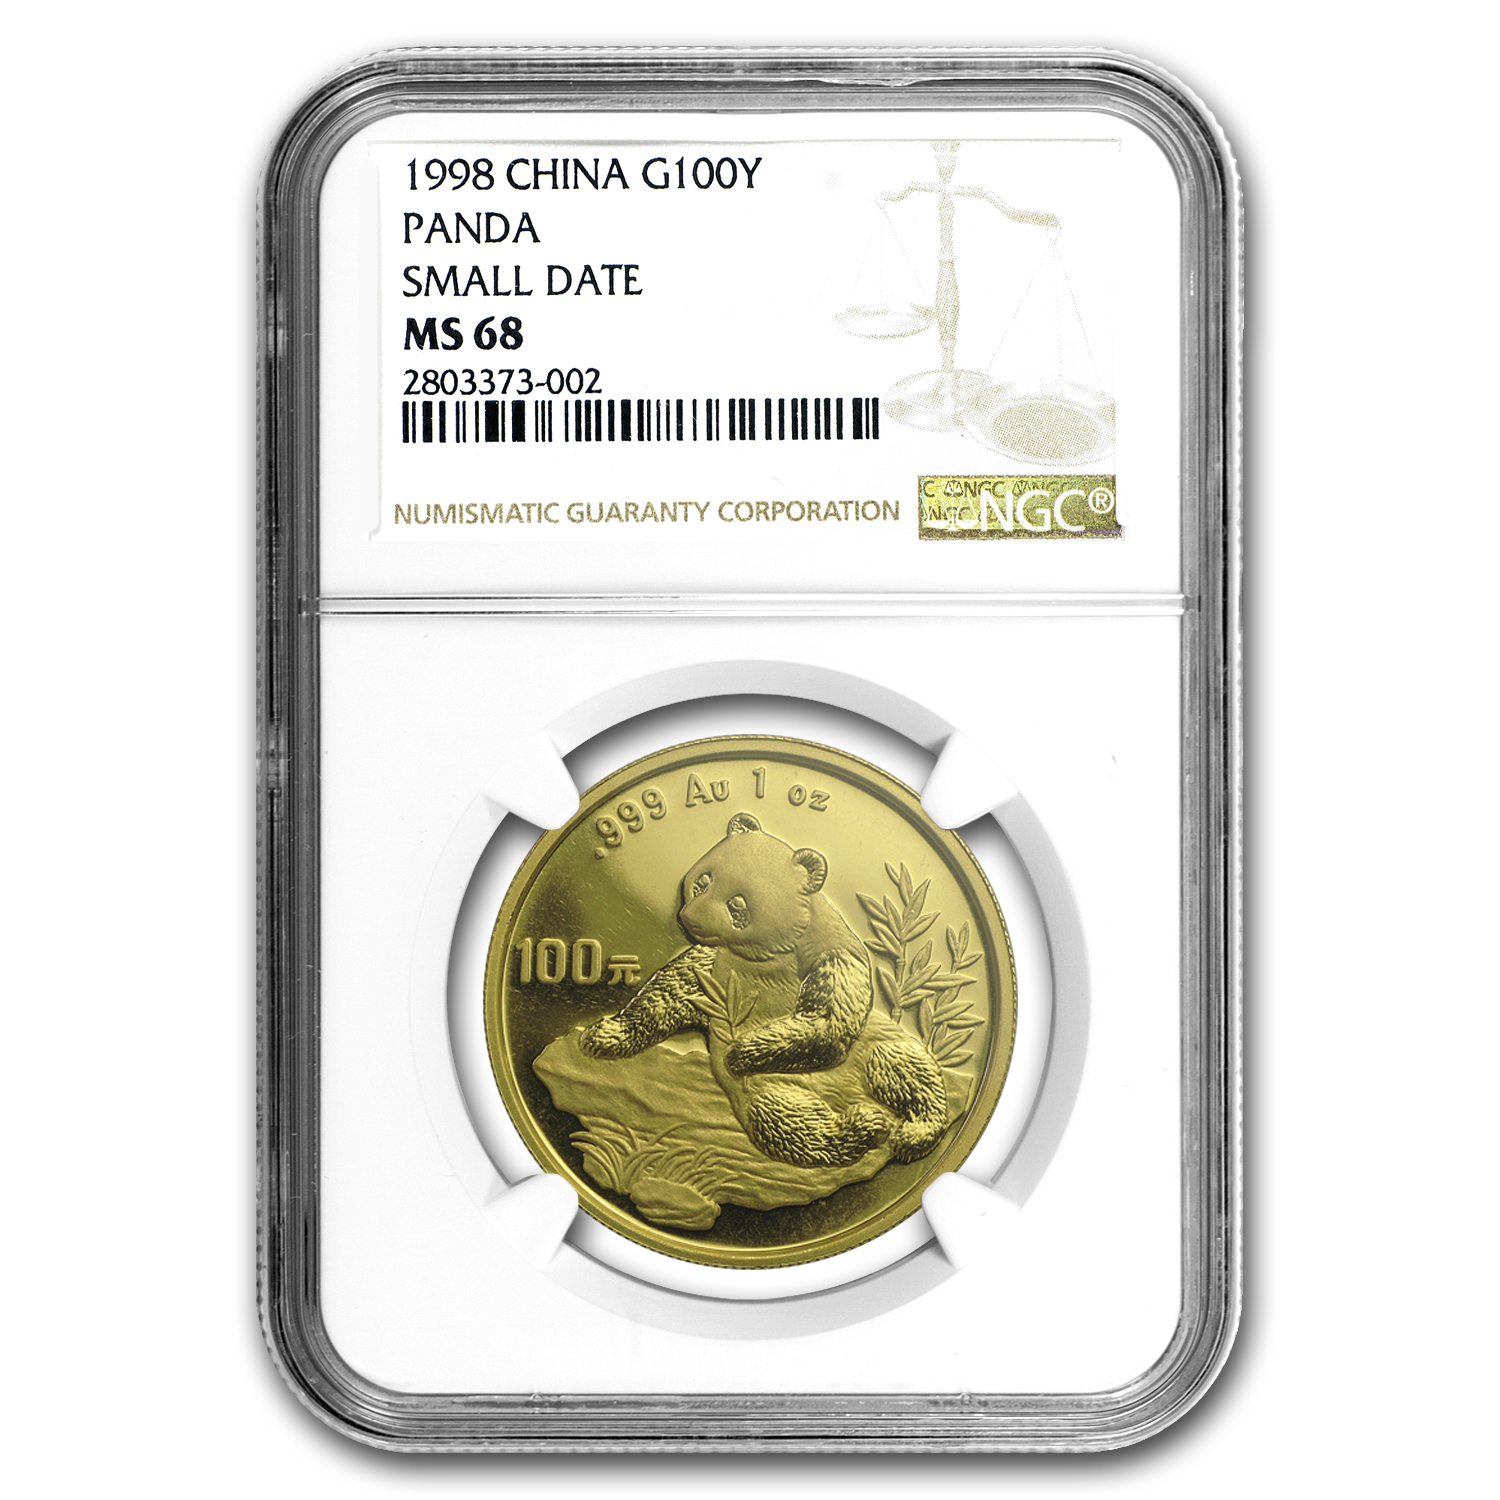 1998 China 1 oz Gold Panda Small Date MS-68 NGC